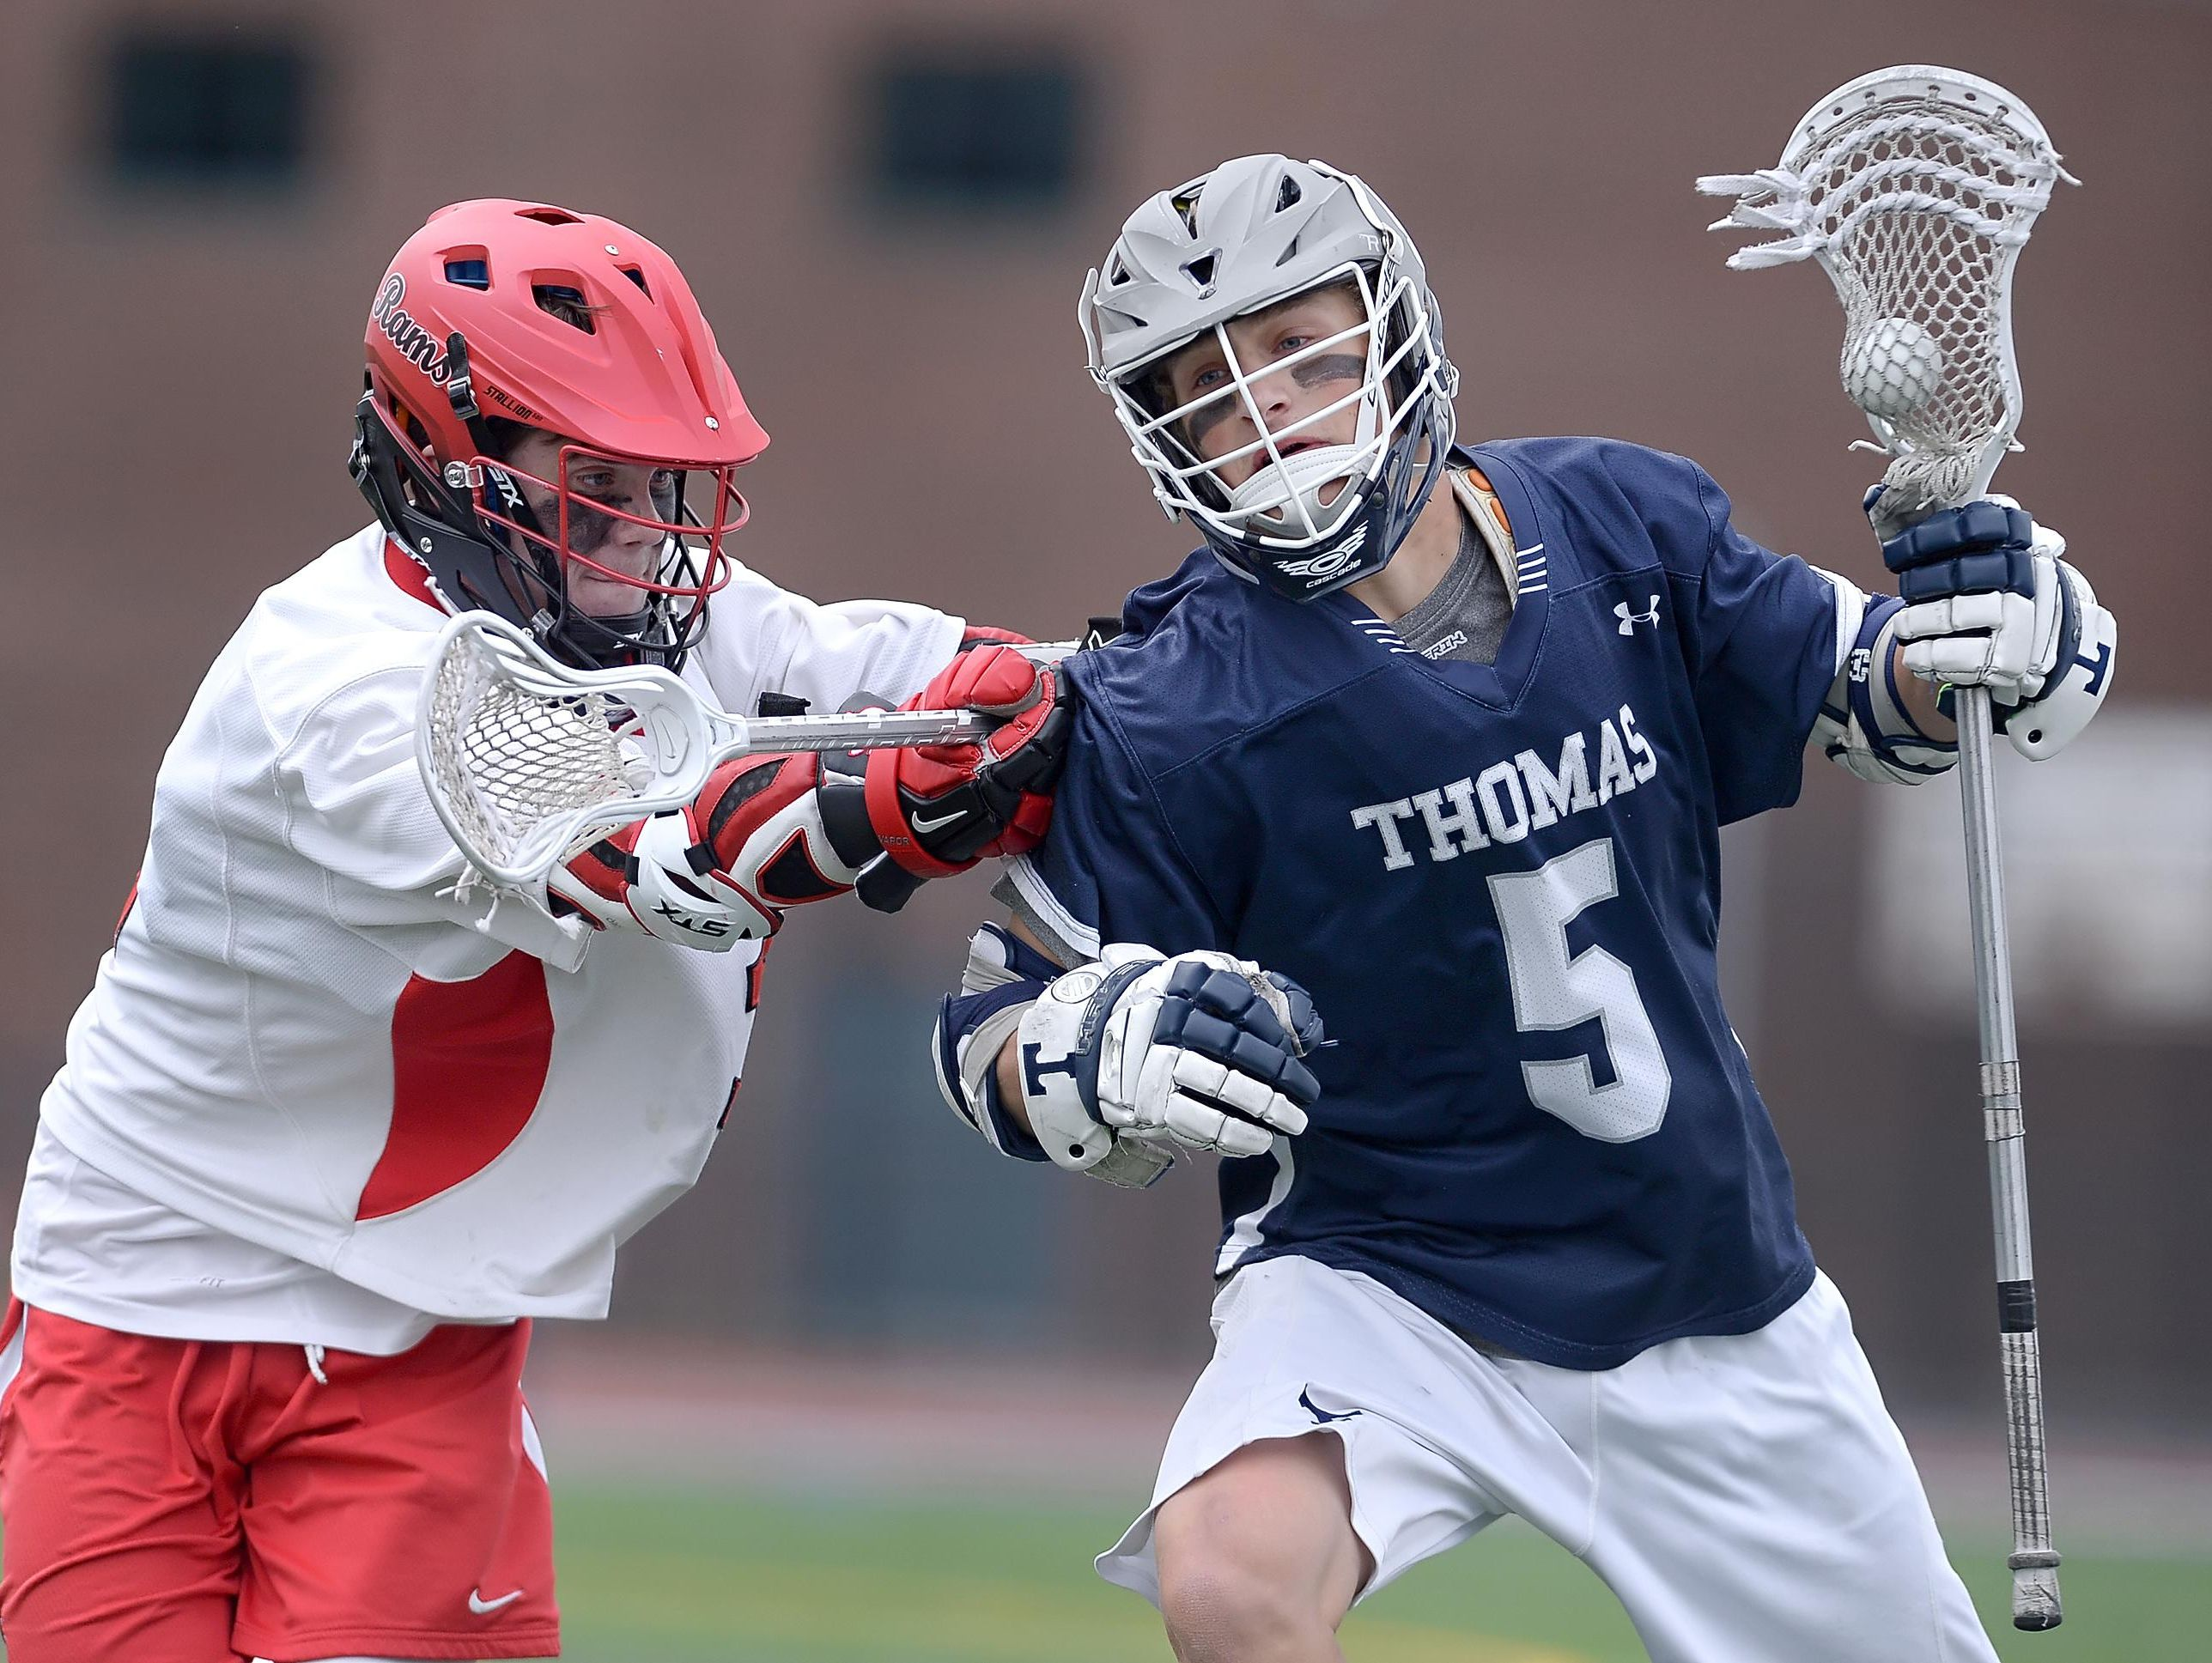 Webster Thomas' Matt Hill, right is defended by Jamesville-Dewitt's Matthew Paul during the NYSPHSAA Class B Western Semifinal played at Cicero-North Syracuse High School on Wednesday, June 8, 2016. Webster Thomas' season ended with a 13-9 loss to Jamesville-Dewitt-III.